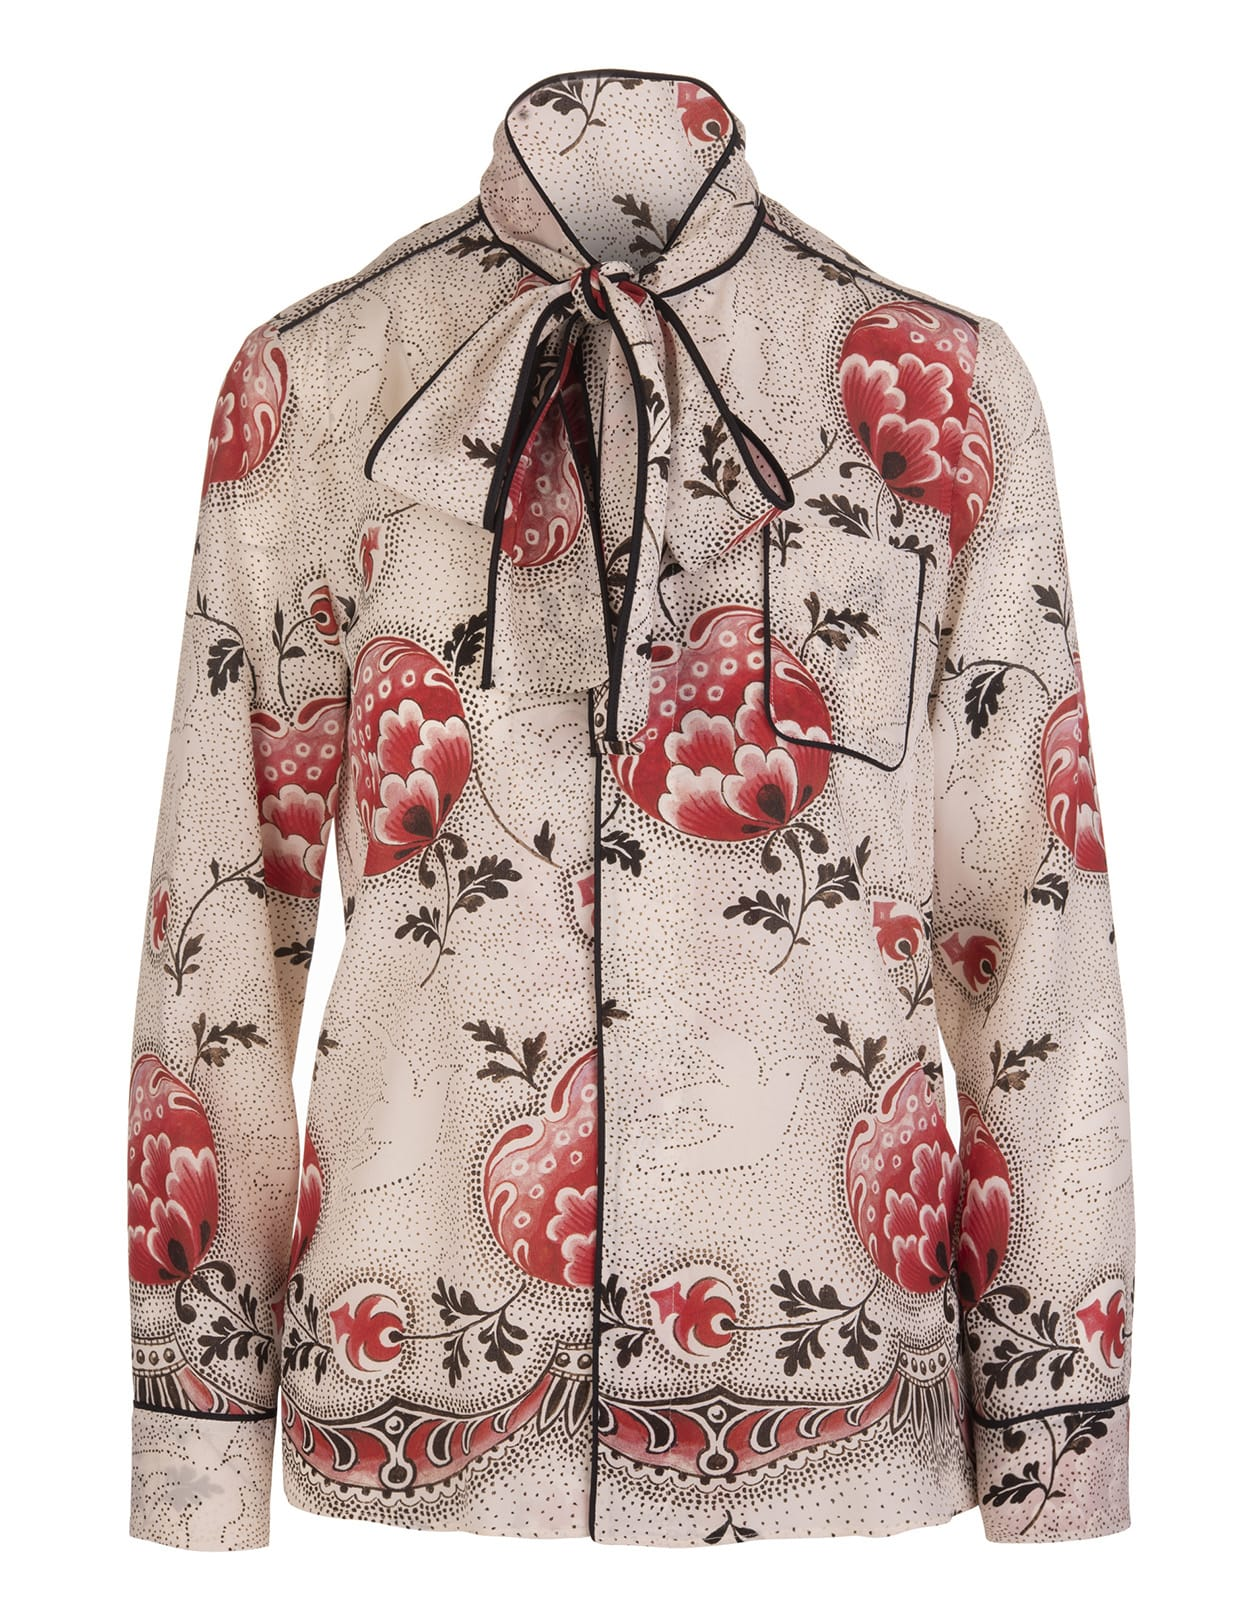 Bow Collar Flowers Blouse